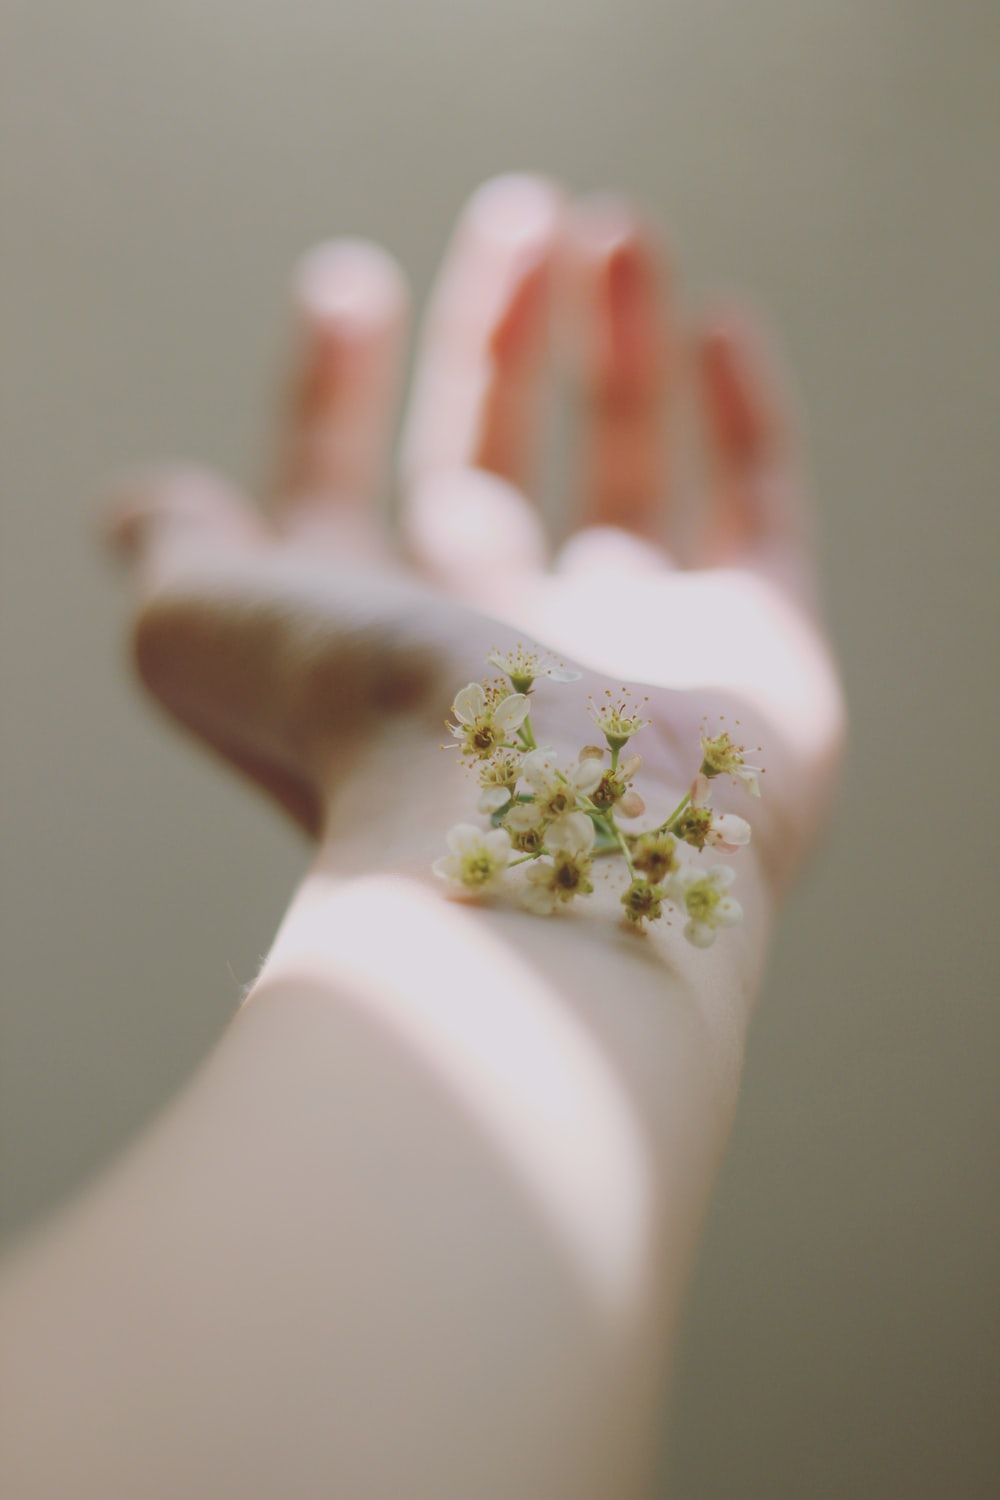 selective focus photography of white clustered flowers on left human hand